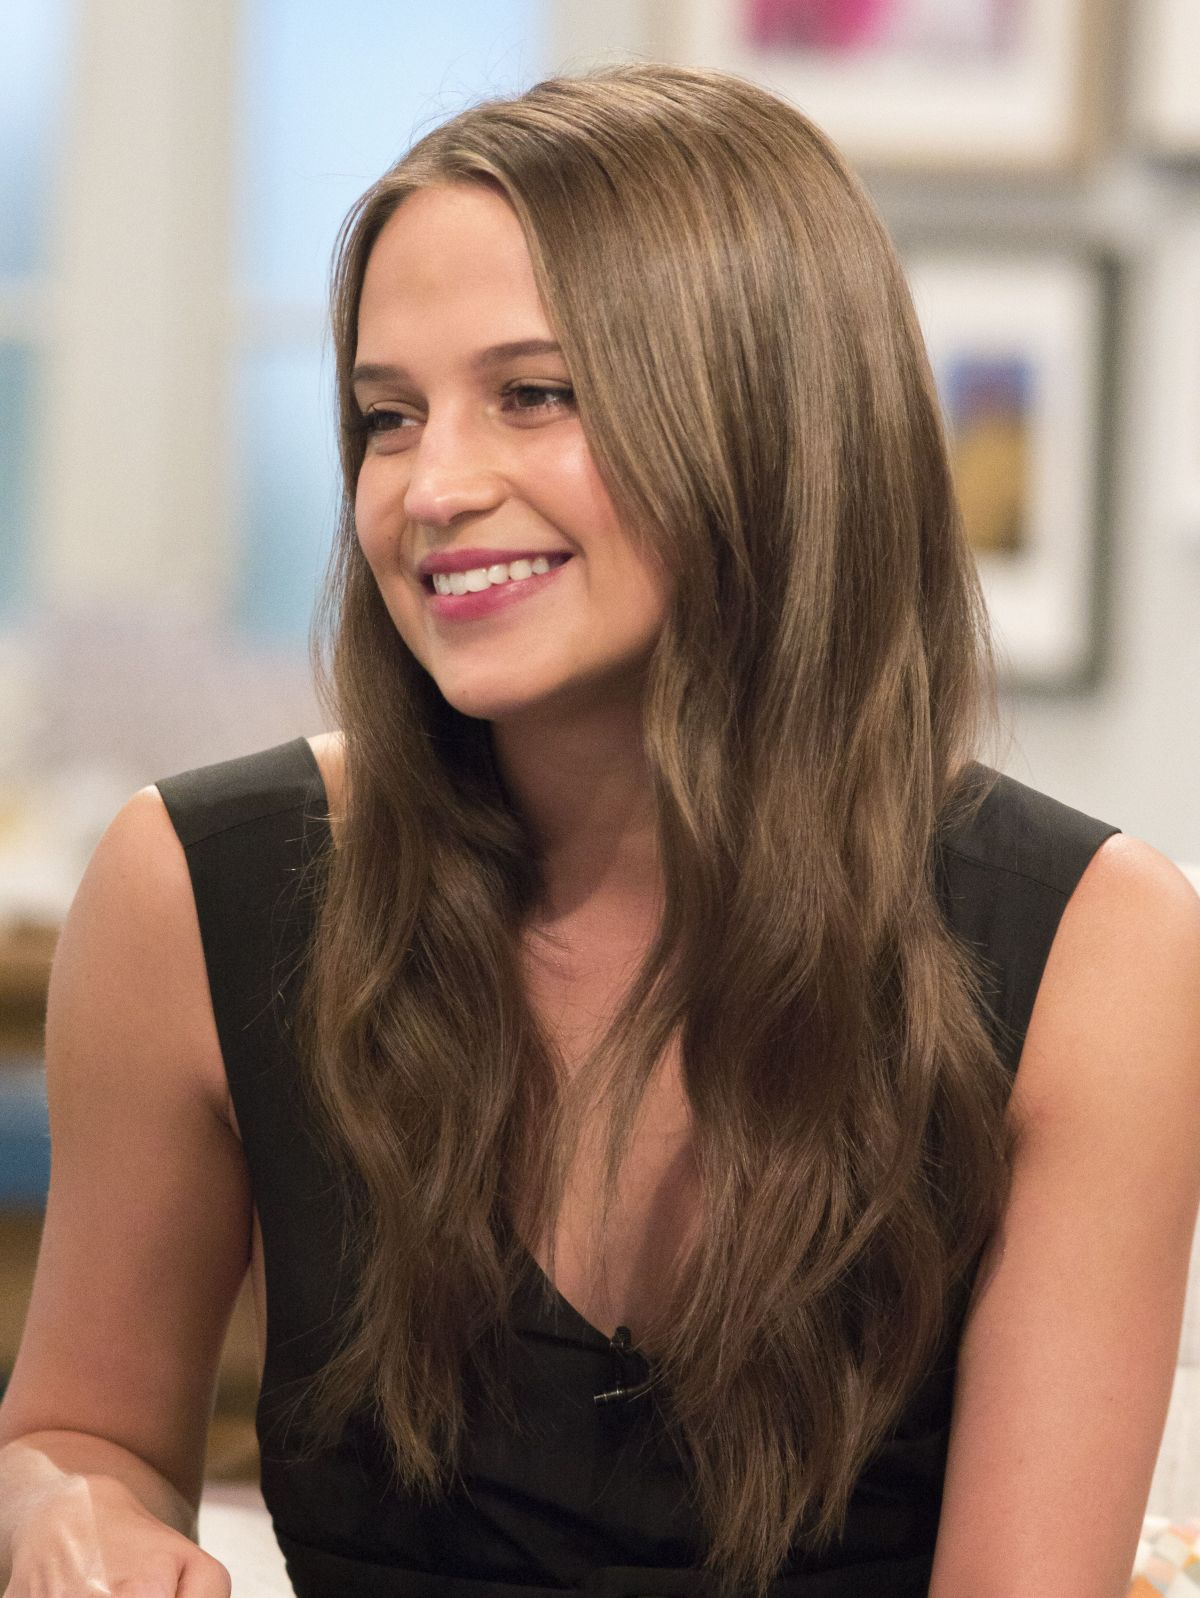 Full HQ Photos of Alicia Vikander On The Set Of Lorraine Show In London